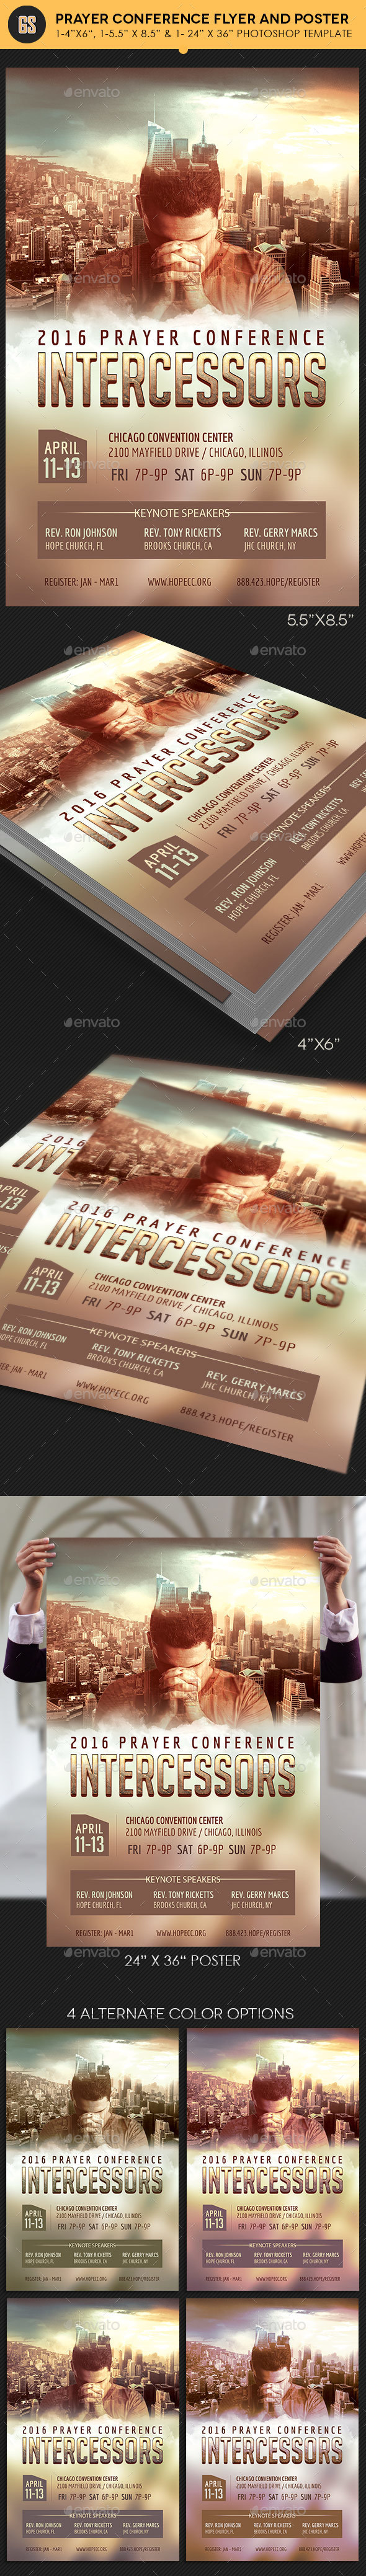 Prayer Conference Flyer Poster Template - Church Flyers